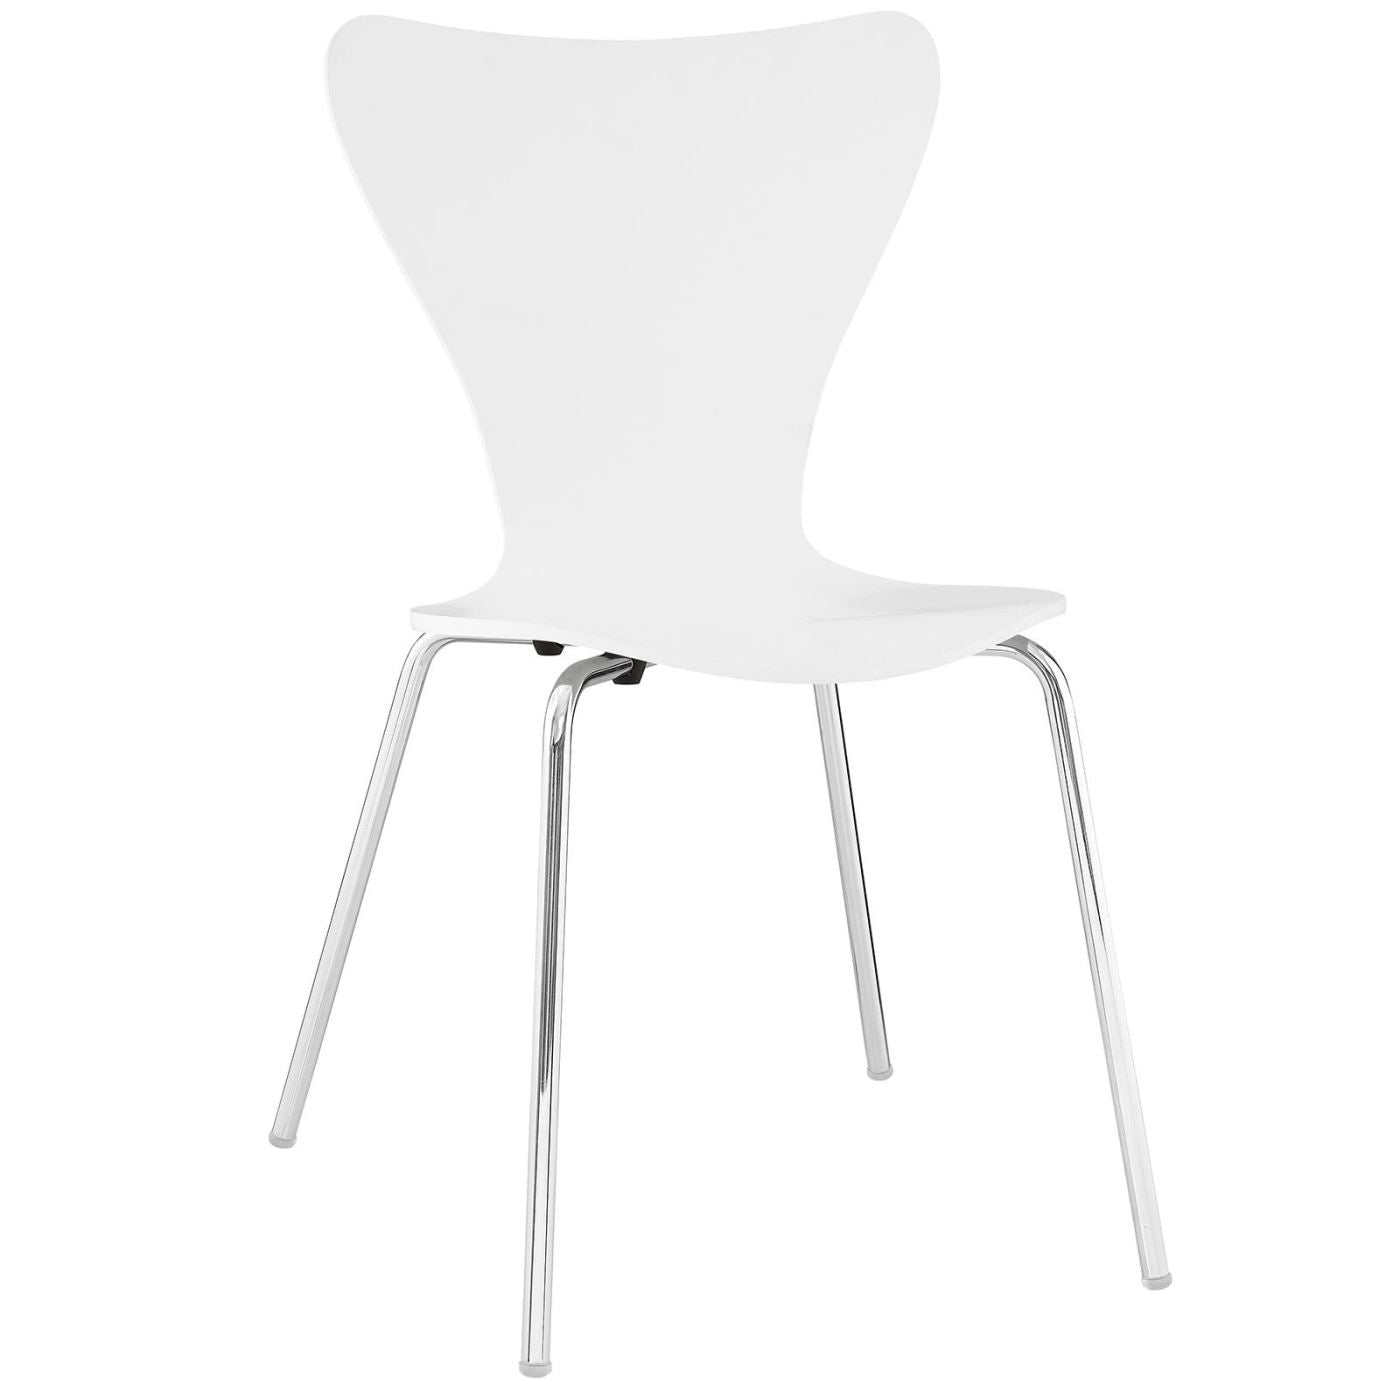 Accent Chairs Under 100 At Contemporary Furniture Warehouse